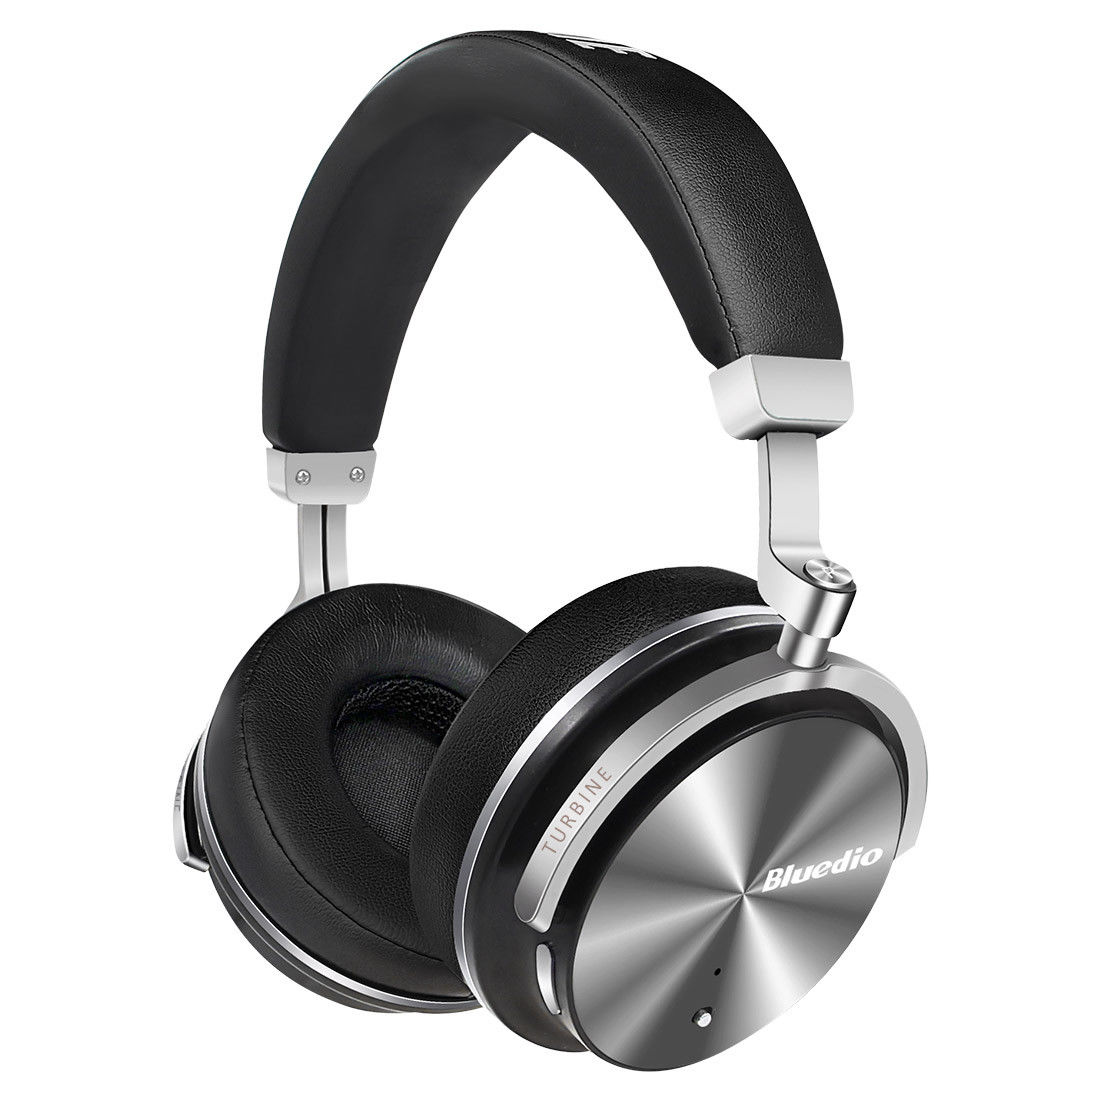 Bluedio T4s Active Noise Cancelling Bluetooth Headphones Over Ear with Mic Wireless Headset Black by Bluedio